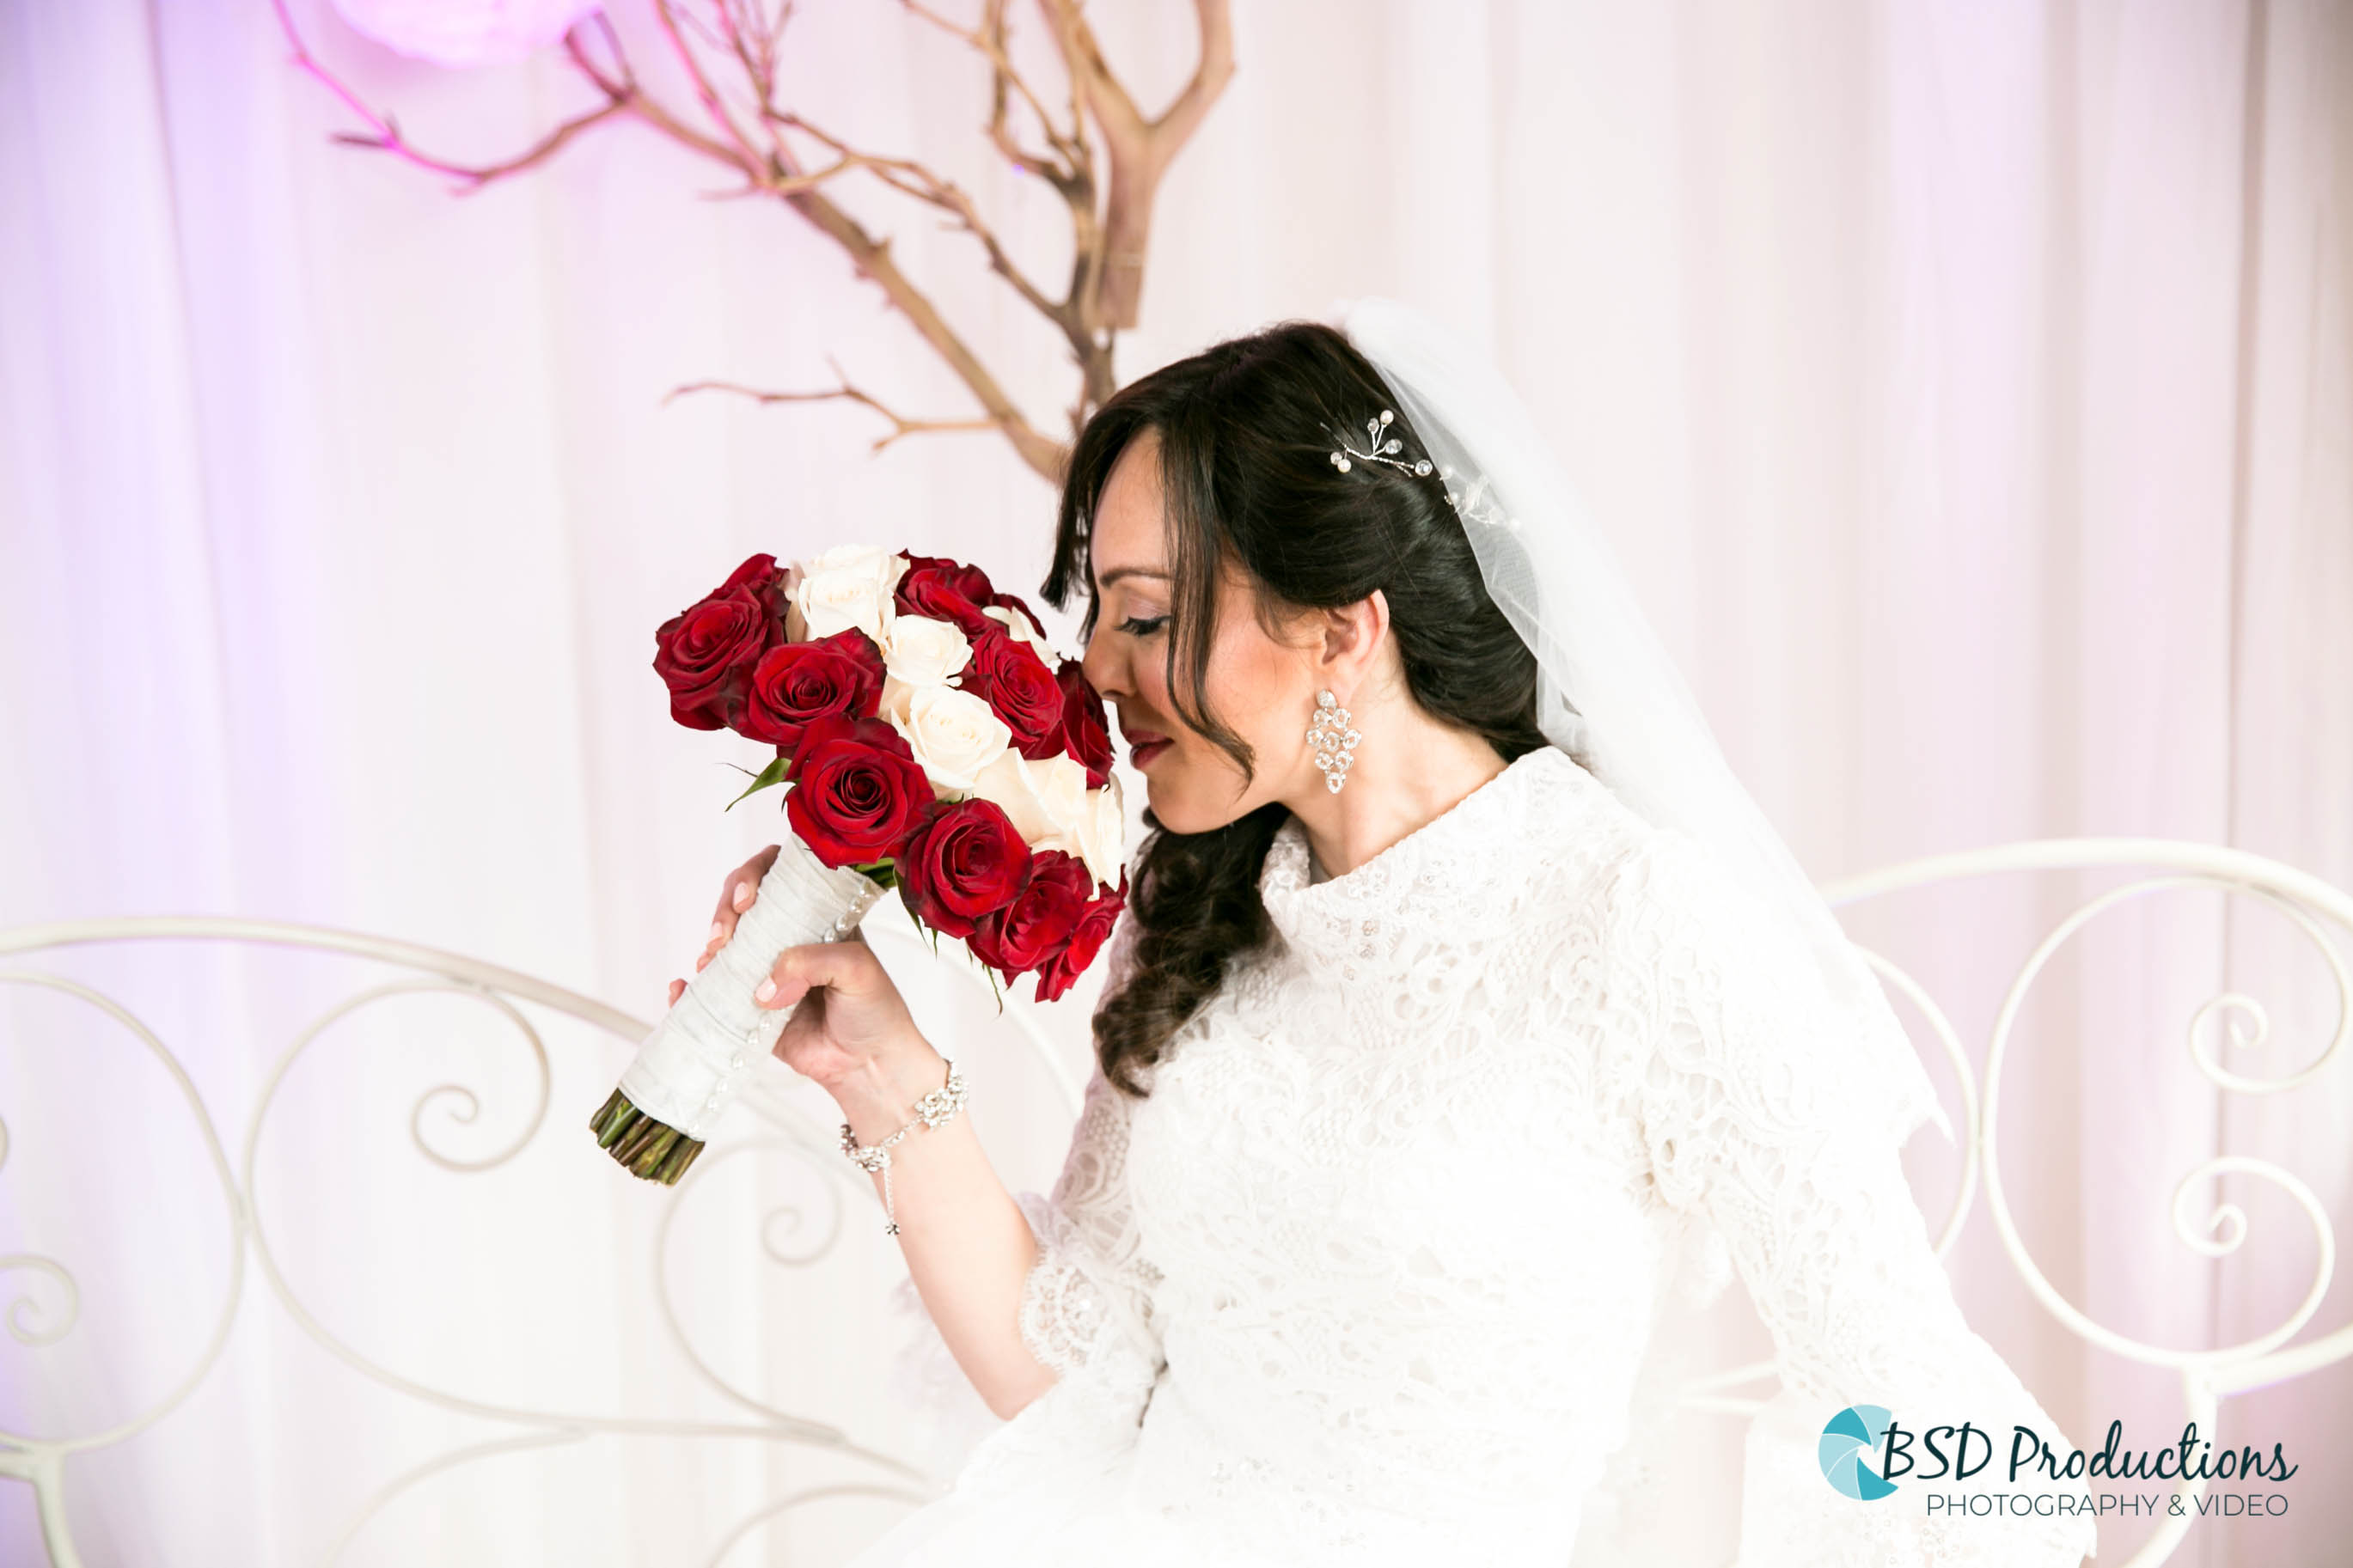 UH5A2479 Wedding – BSD Productions Photography